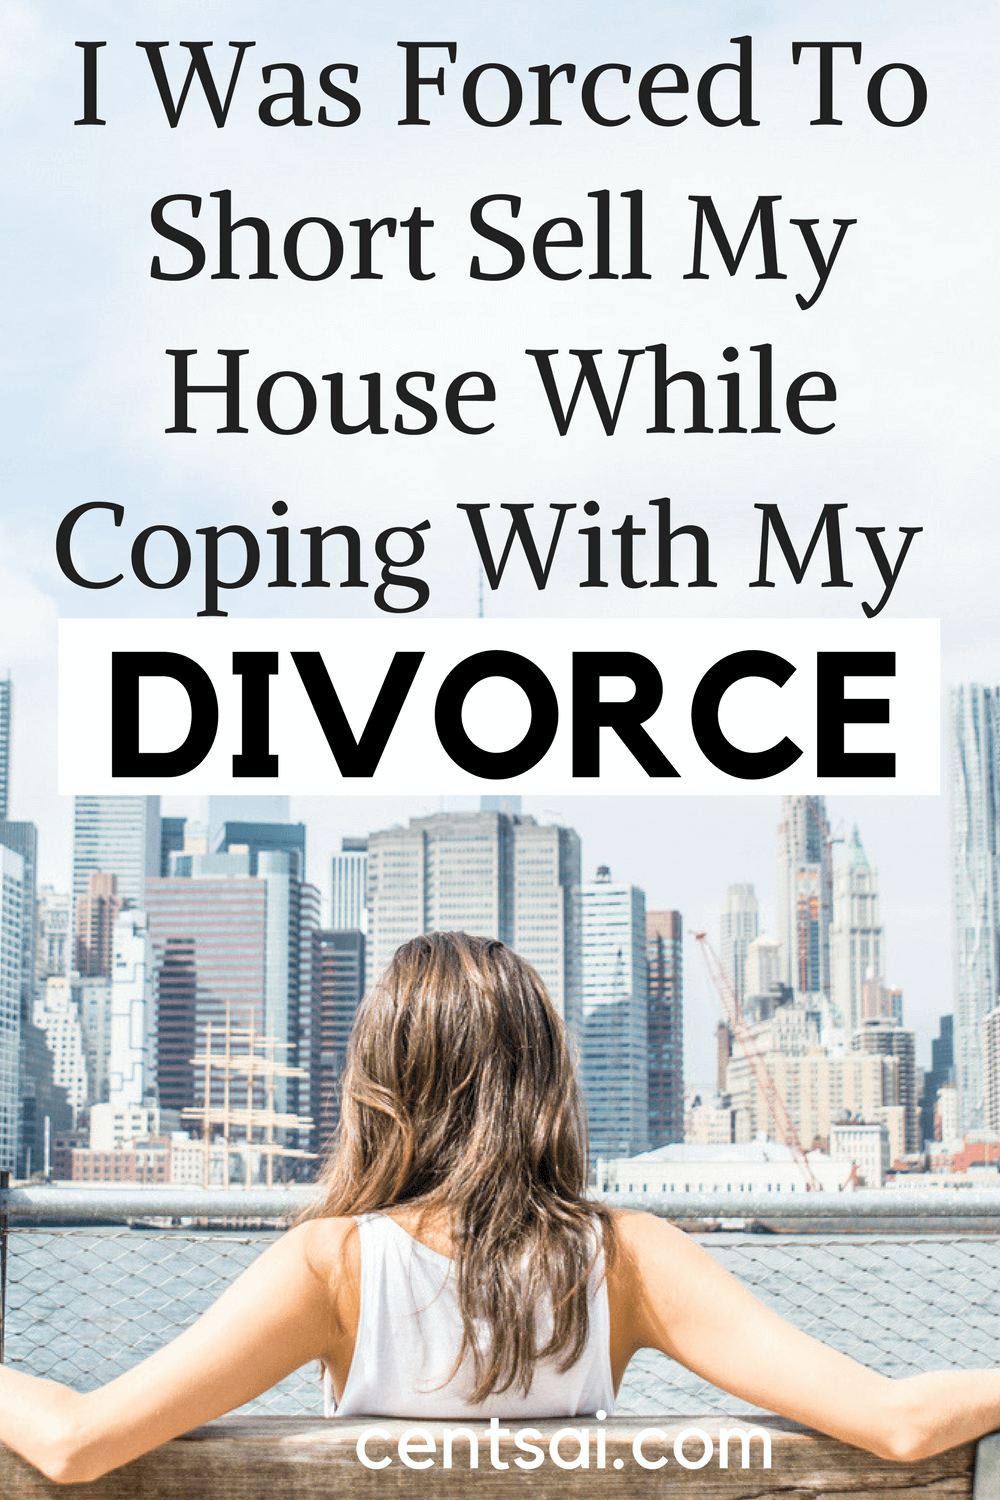 I Was Forced To Short Sell My House While Coping With My Divorce